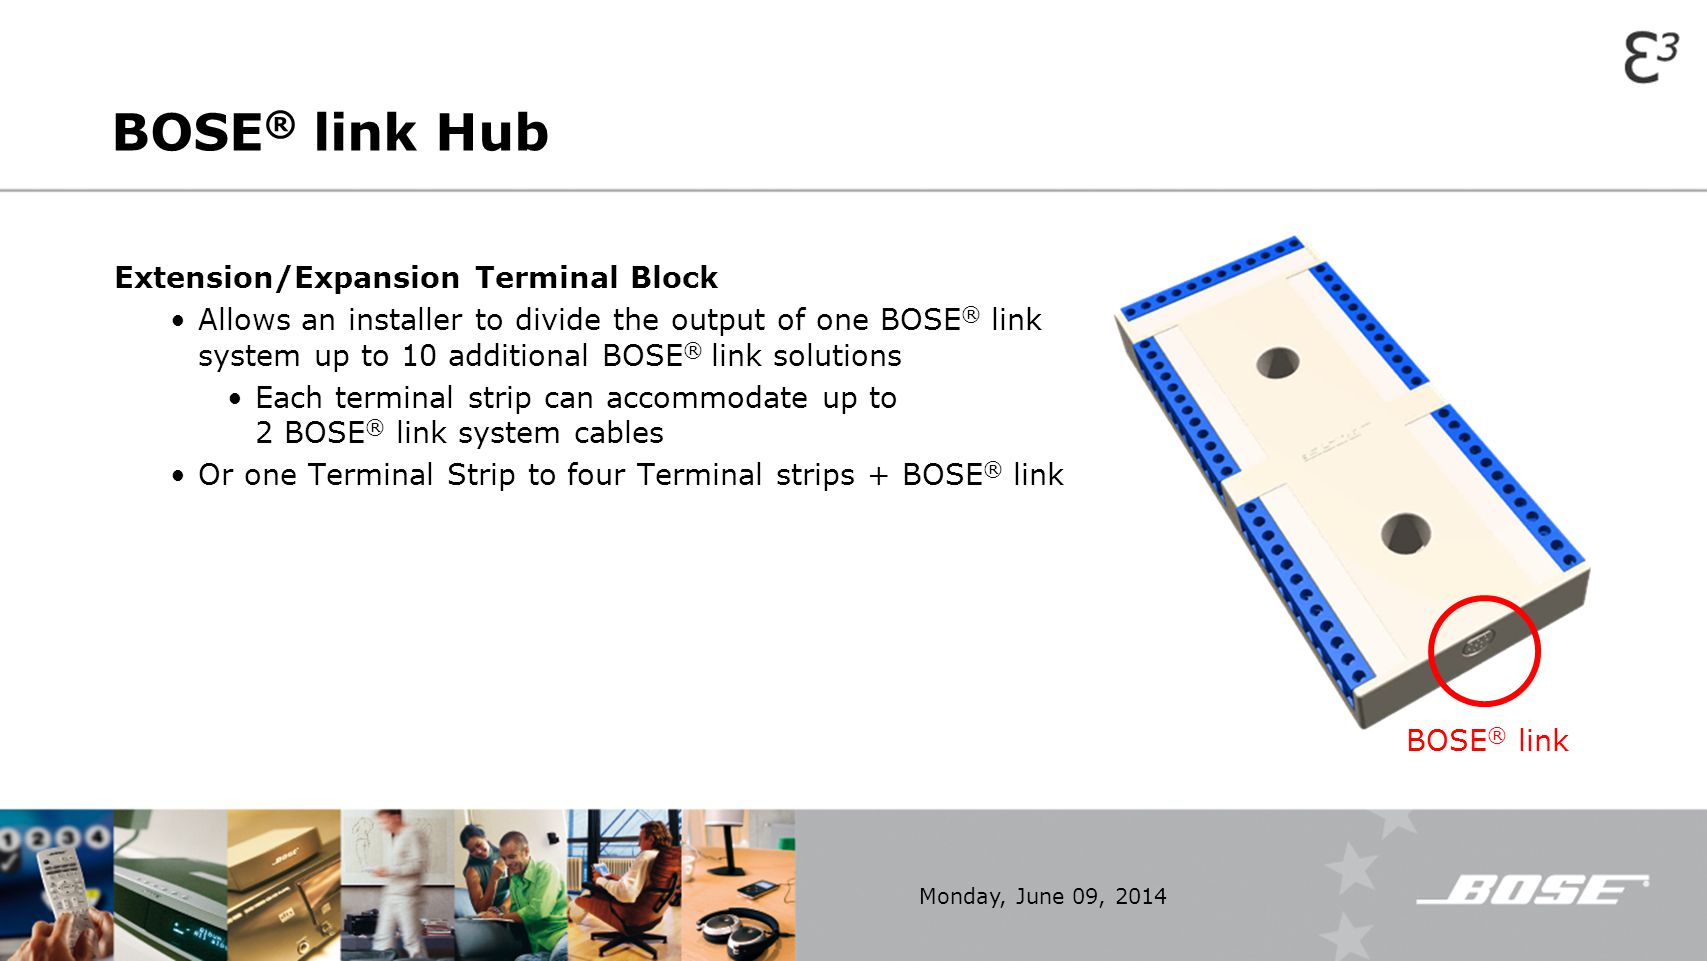 BOSE® link Hub Extension/Expansion Terminal Block